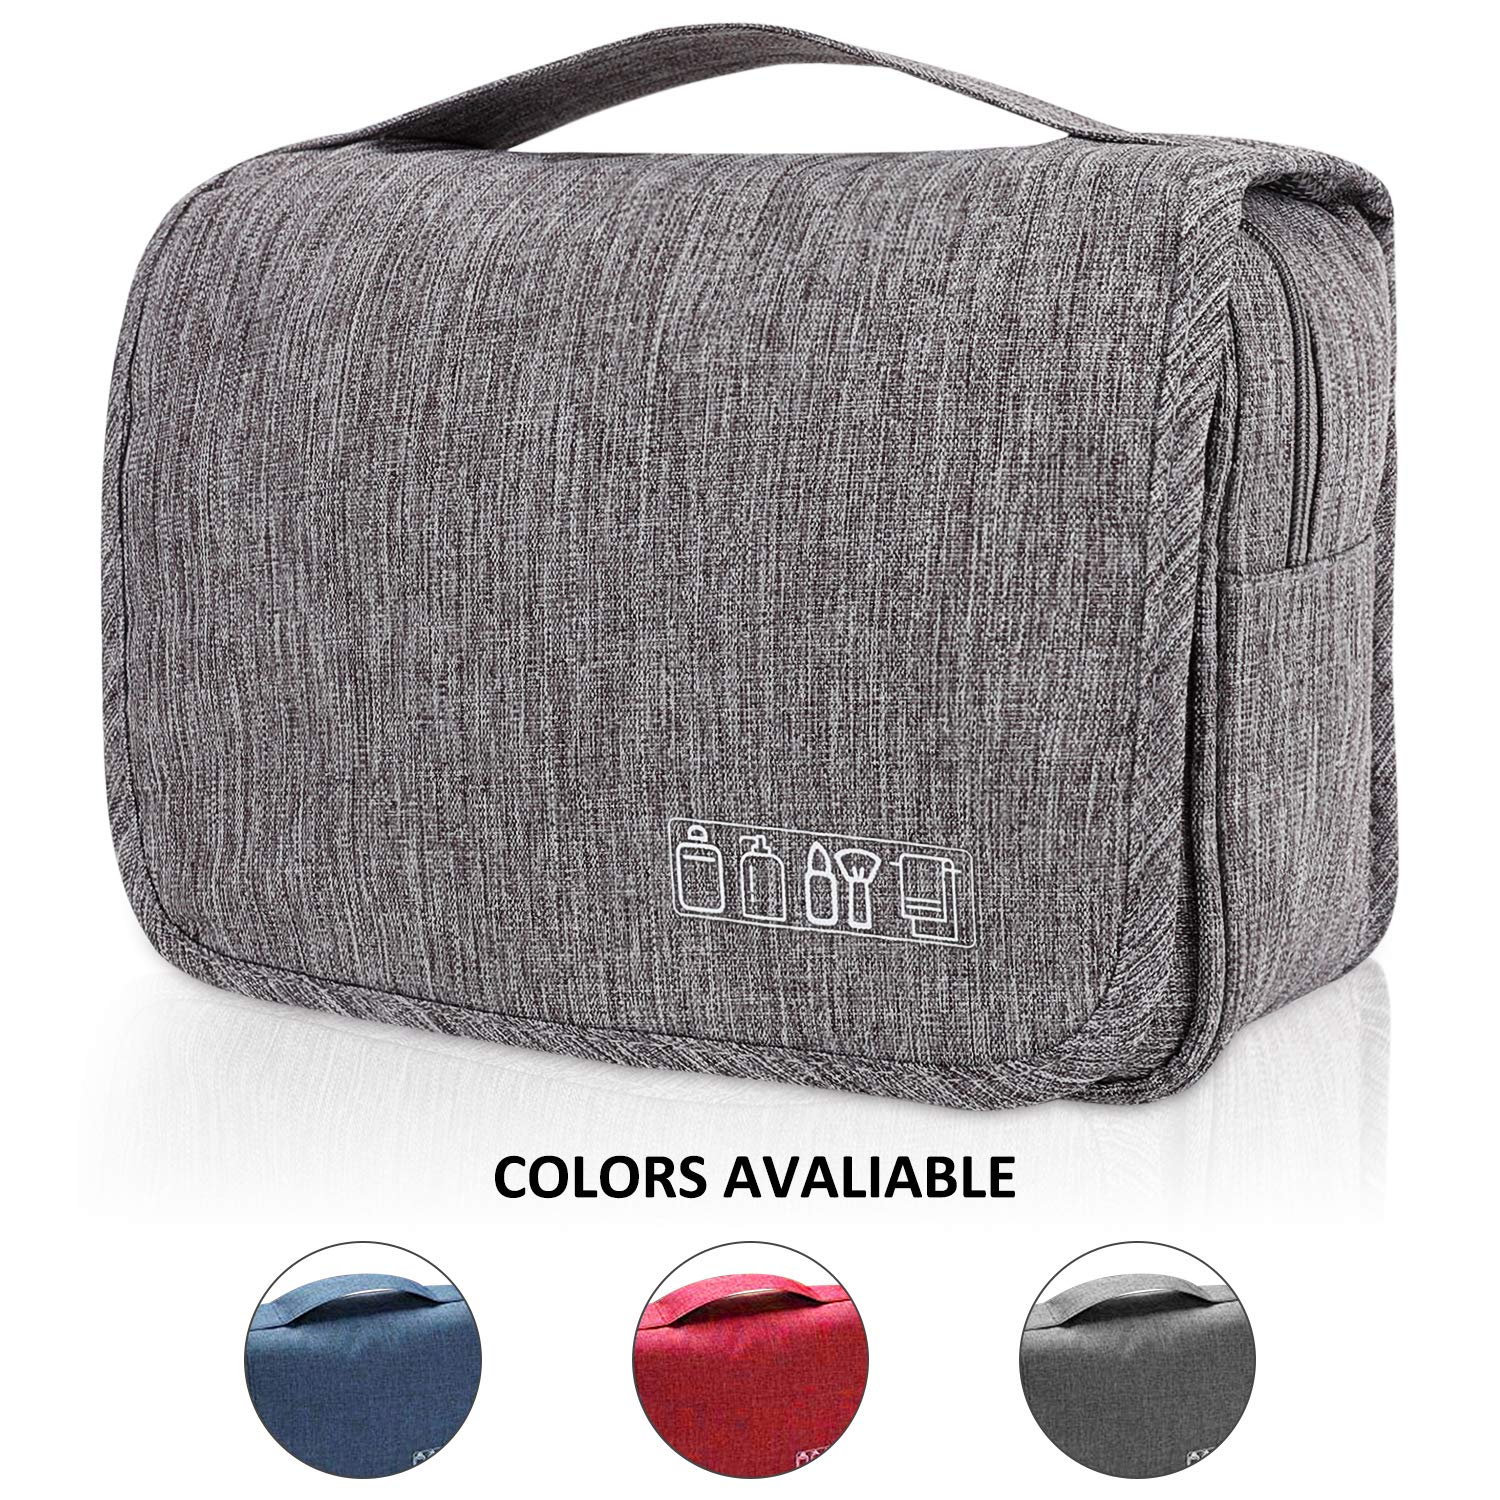 bc278c485da6 EcoLifeDay Toiletry Bag, Handing Toiletry Bag for Travel, Waterproof  Cosmetic Large Travel Kit,...